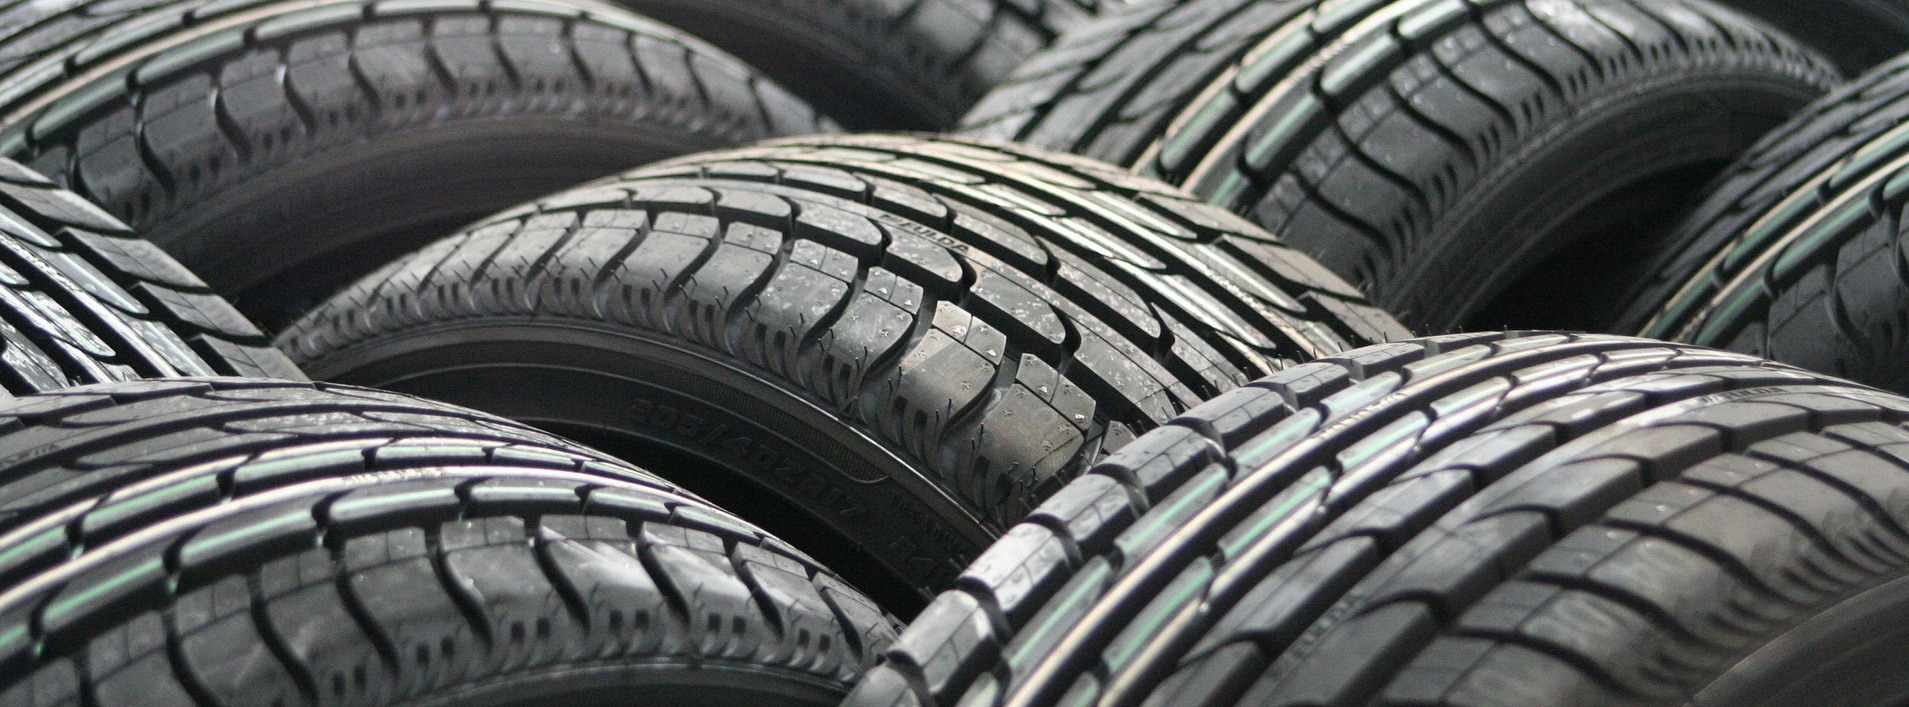 How to choose buggy tires?